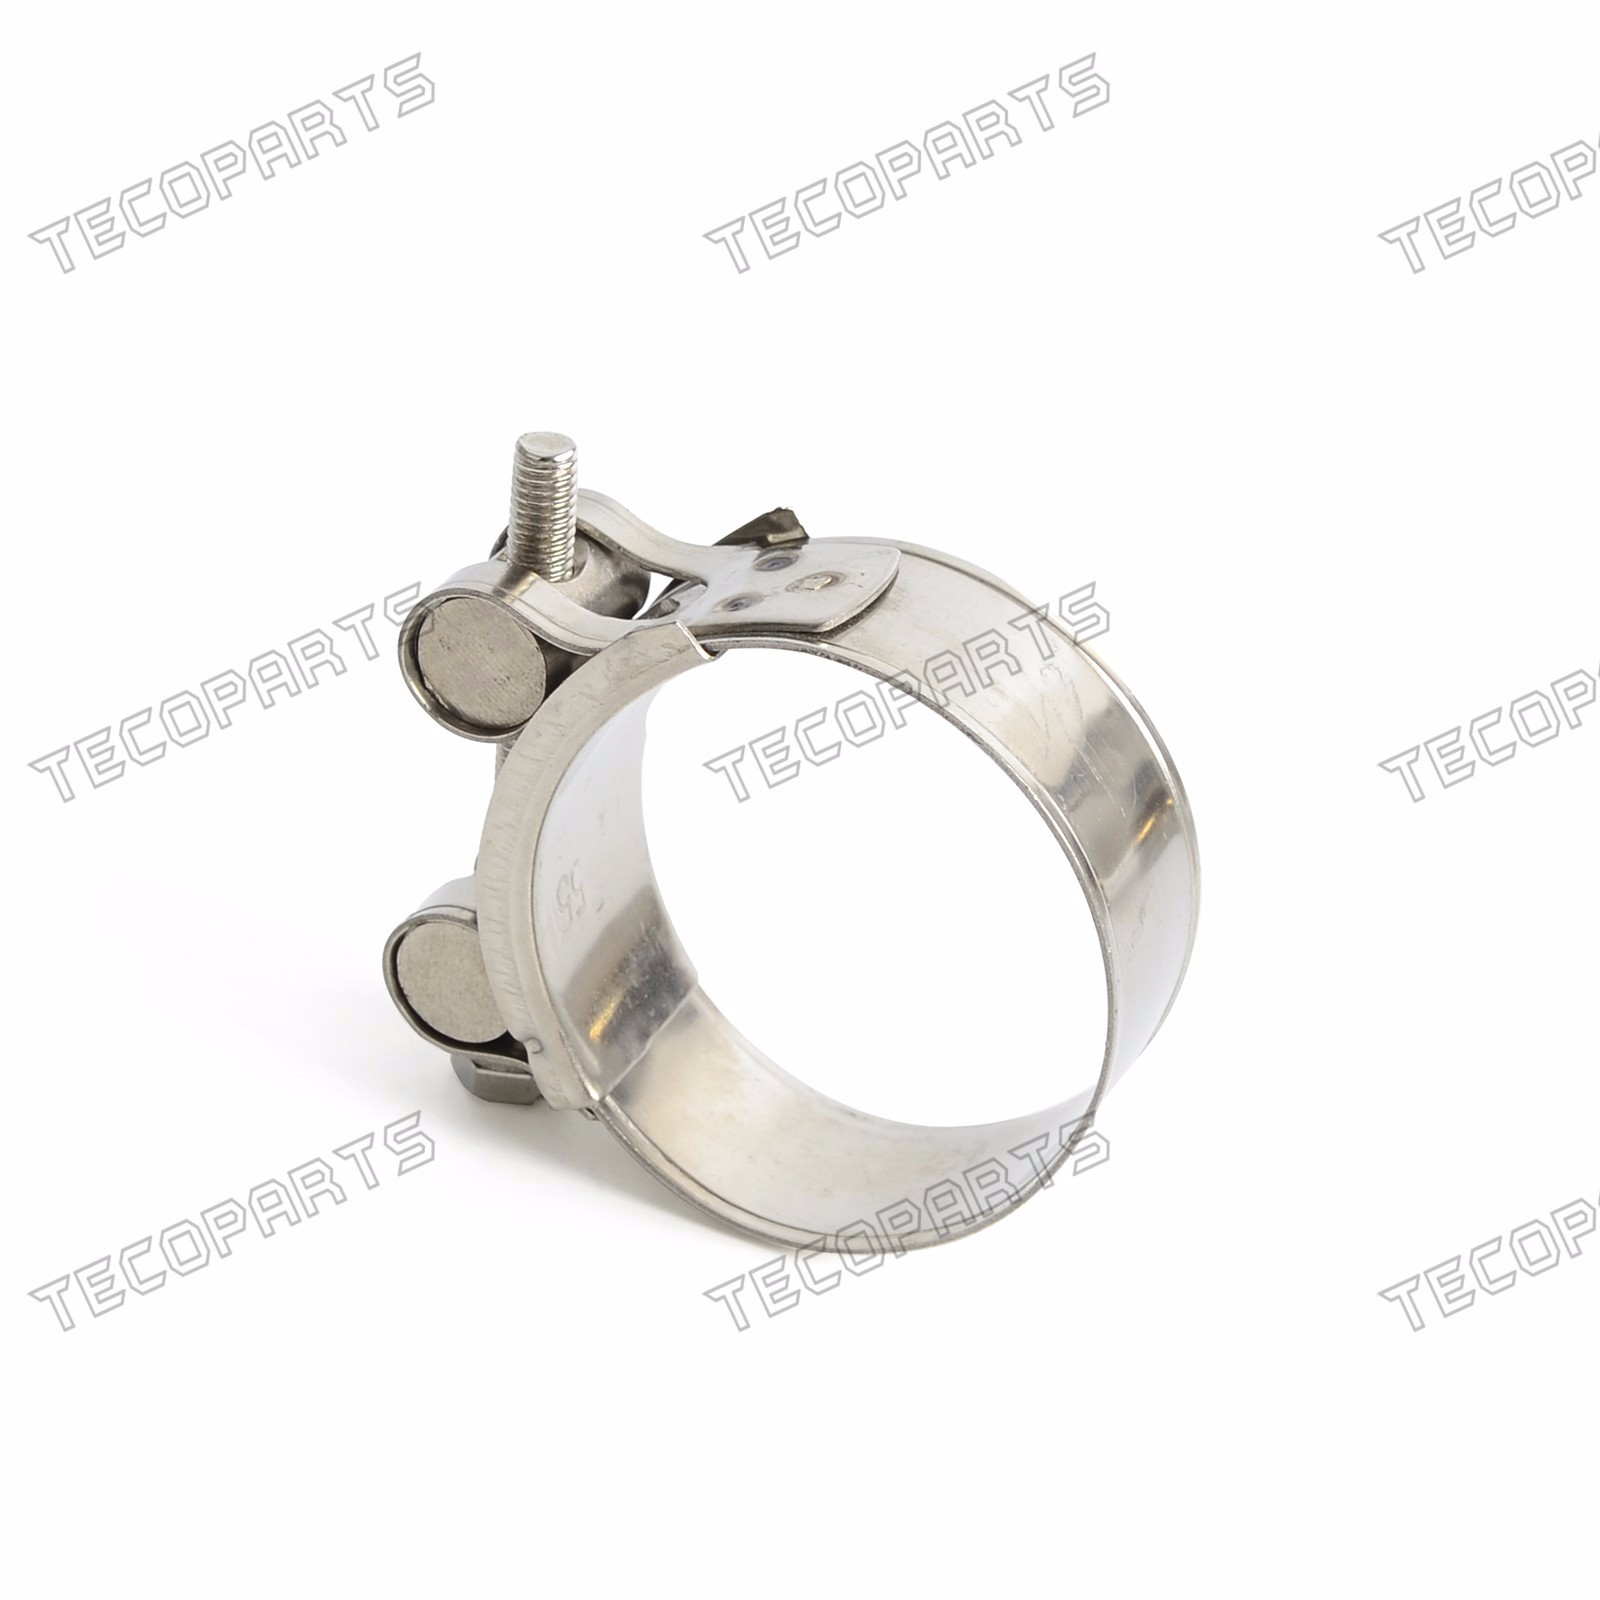 Universal Motorcycle Exhaust Banjo Clamp Clip Kit for 31mm-34mm Slip-on New